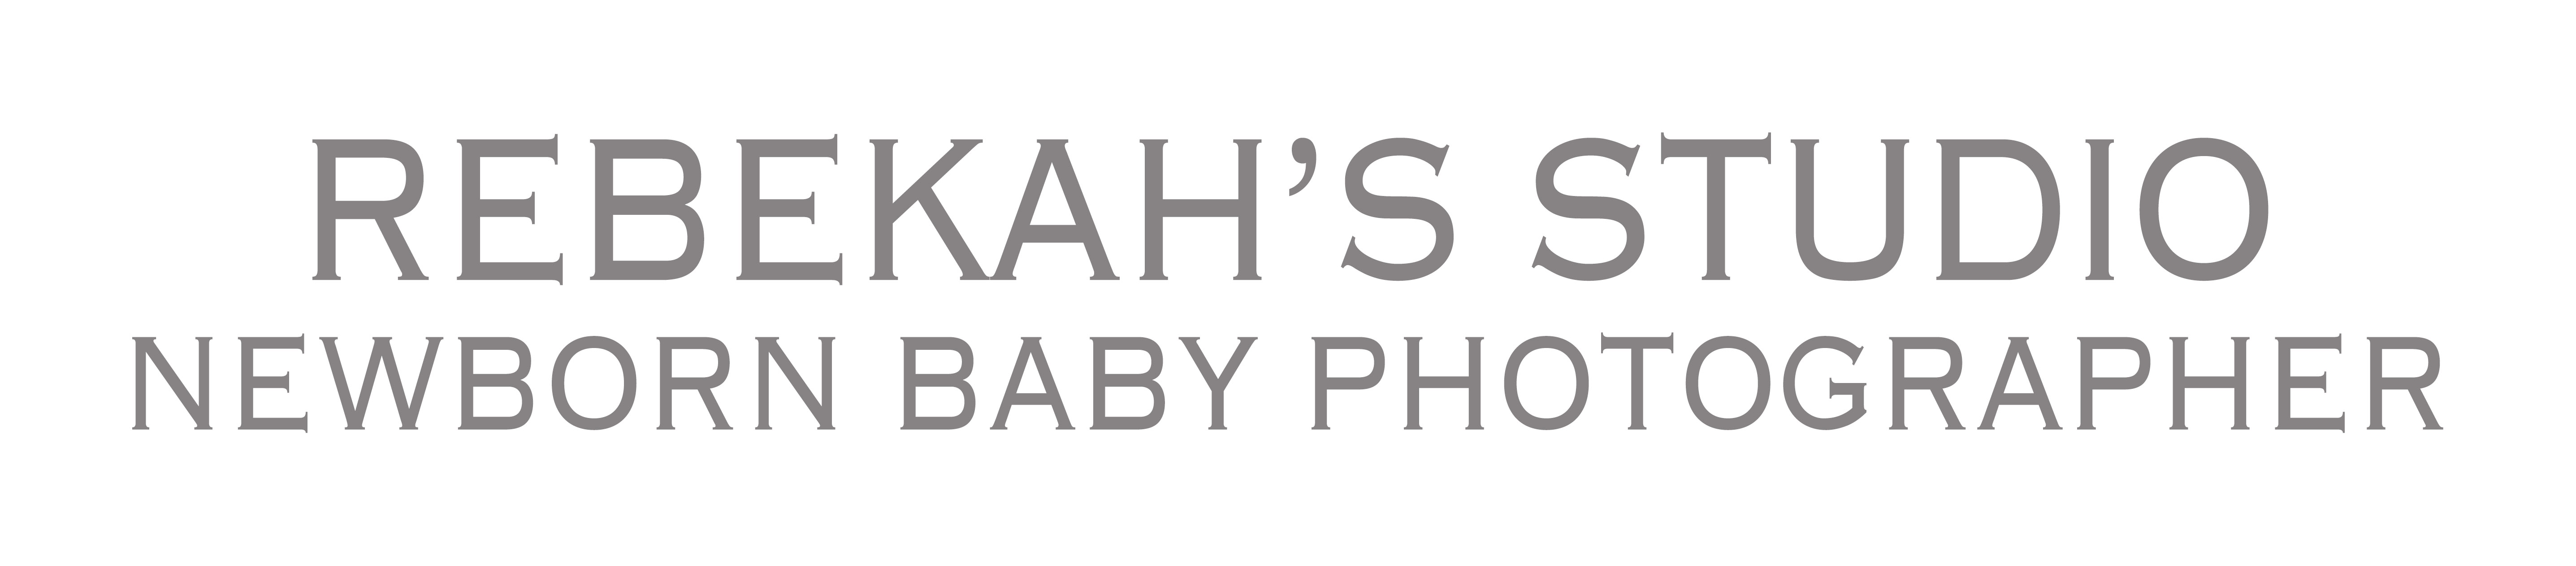 Newborn Baby Photographer in Honiton near Exeter Devon.